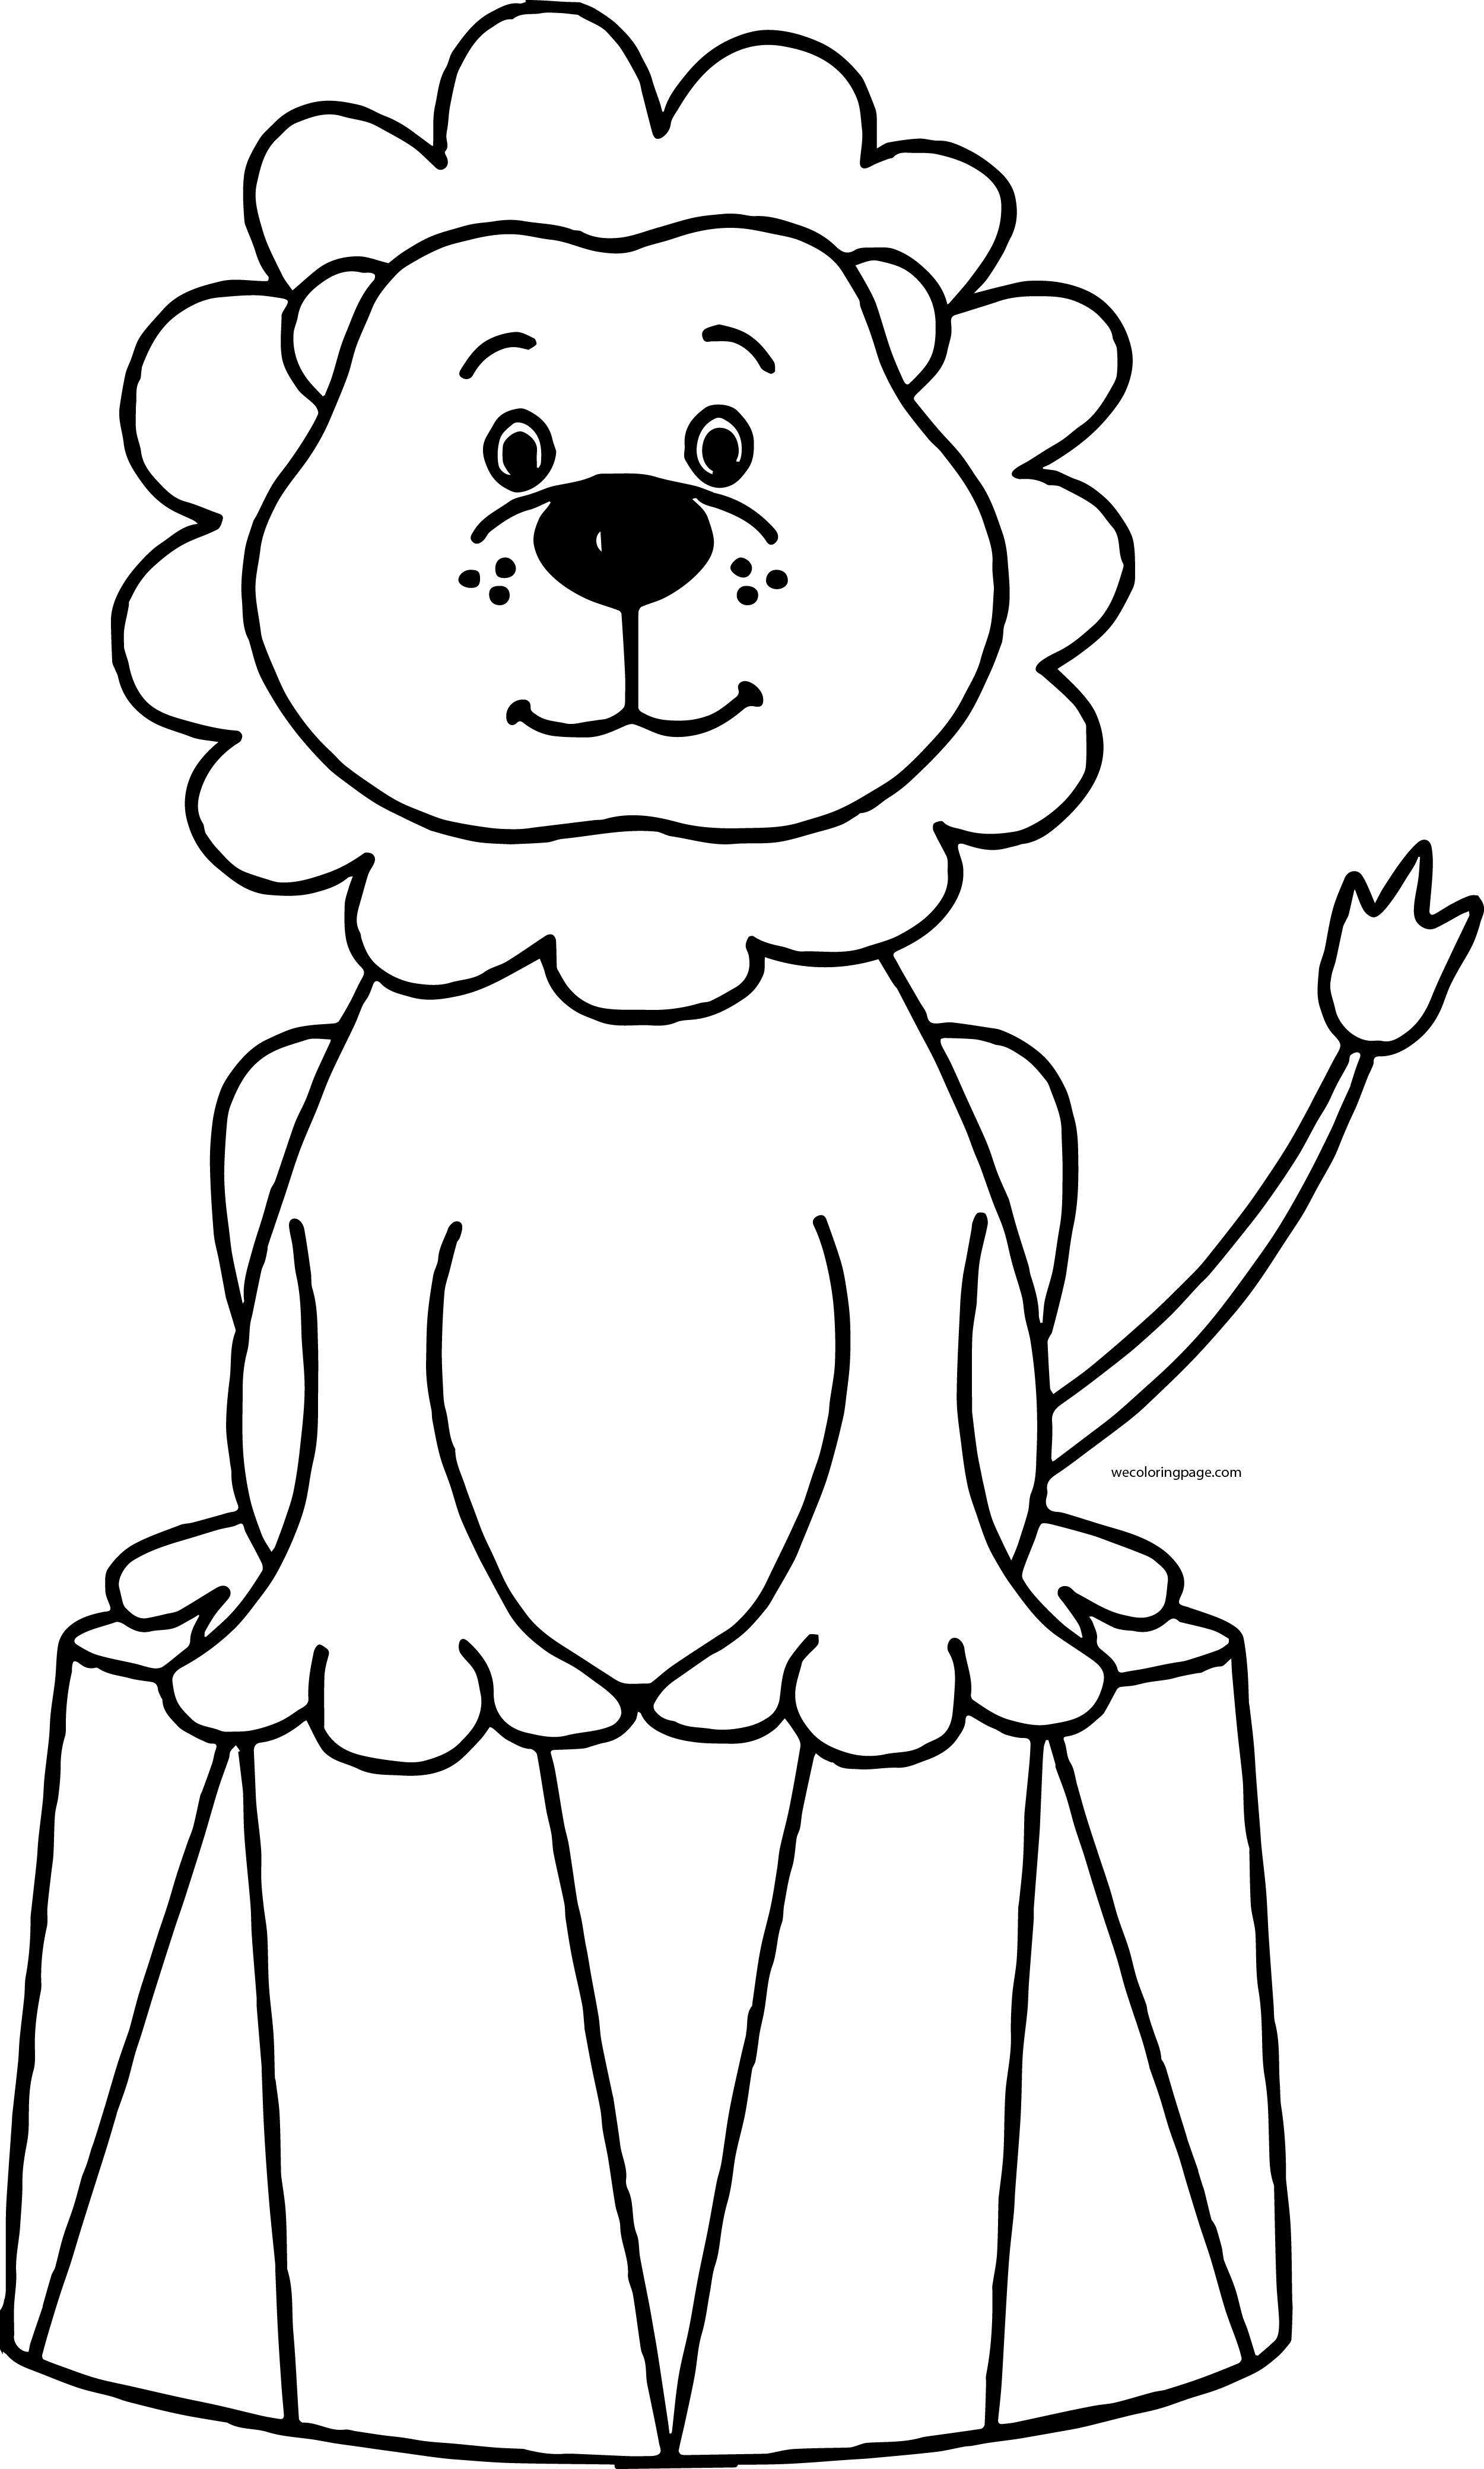 Dancing circus bear clipart black and white graphic royalty free stock Free Circus Lion Cliparts 2, Download Free Clip Art, Free Clip Art ... graphic royalty free stock